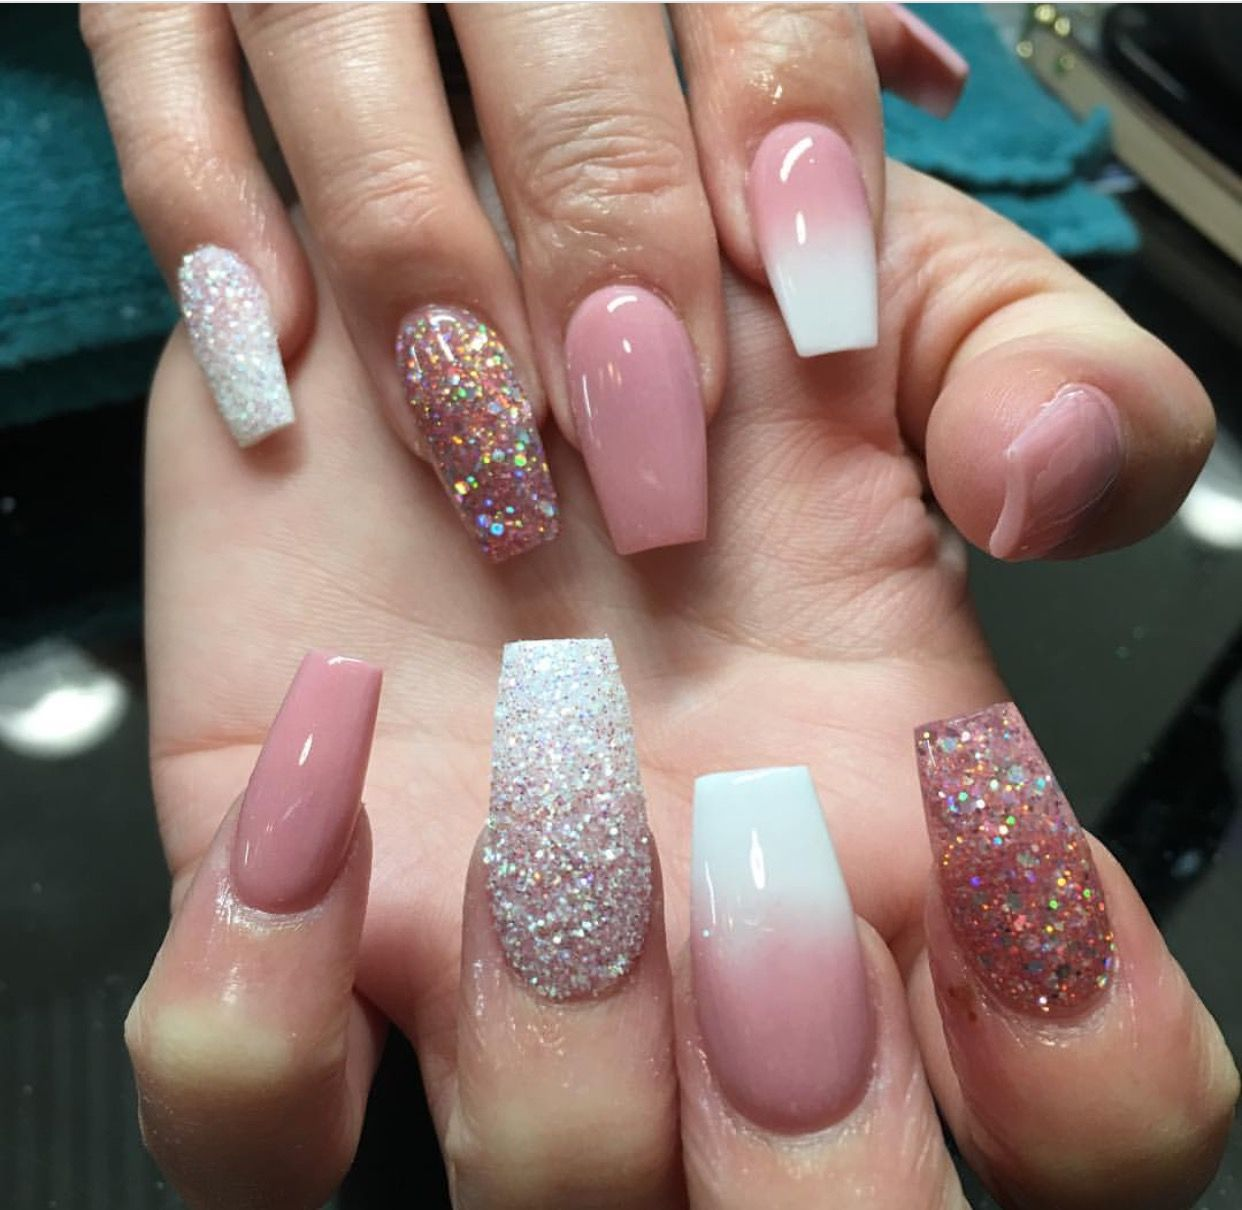 Pin By Karissa Mckinzie On That Nail Game Tho Pink Acrylic Nails Cute Acrylic Nails Pink Nails